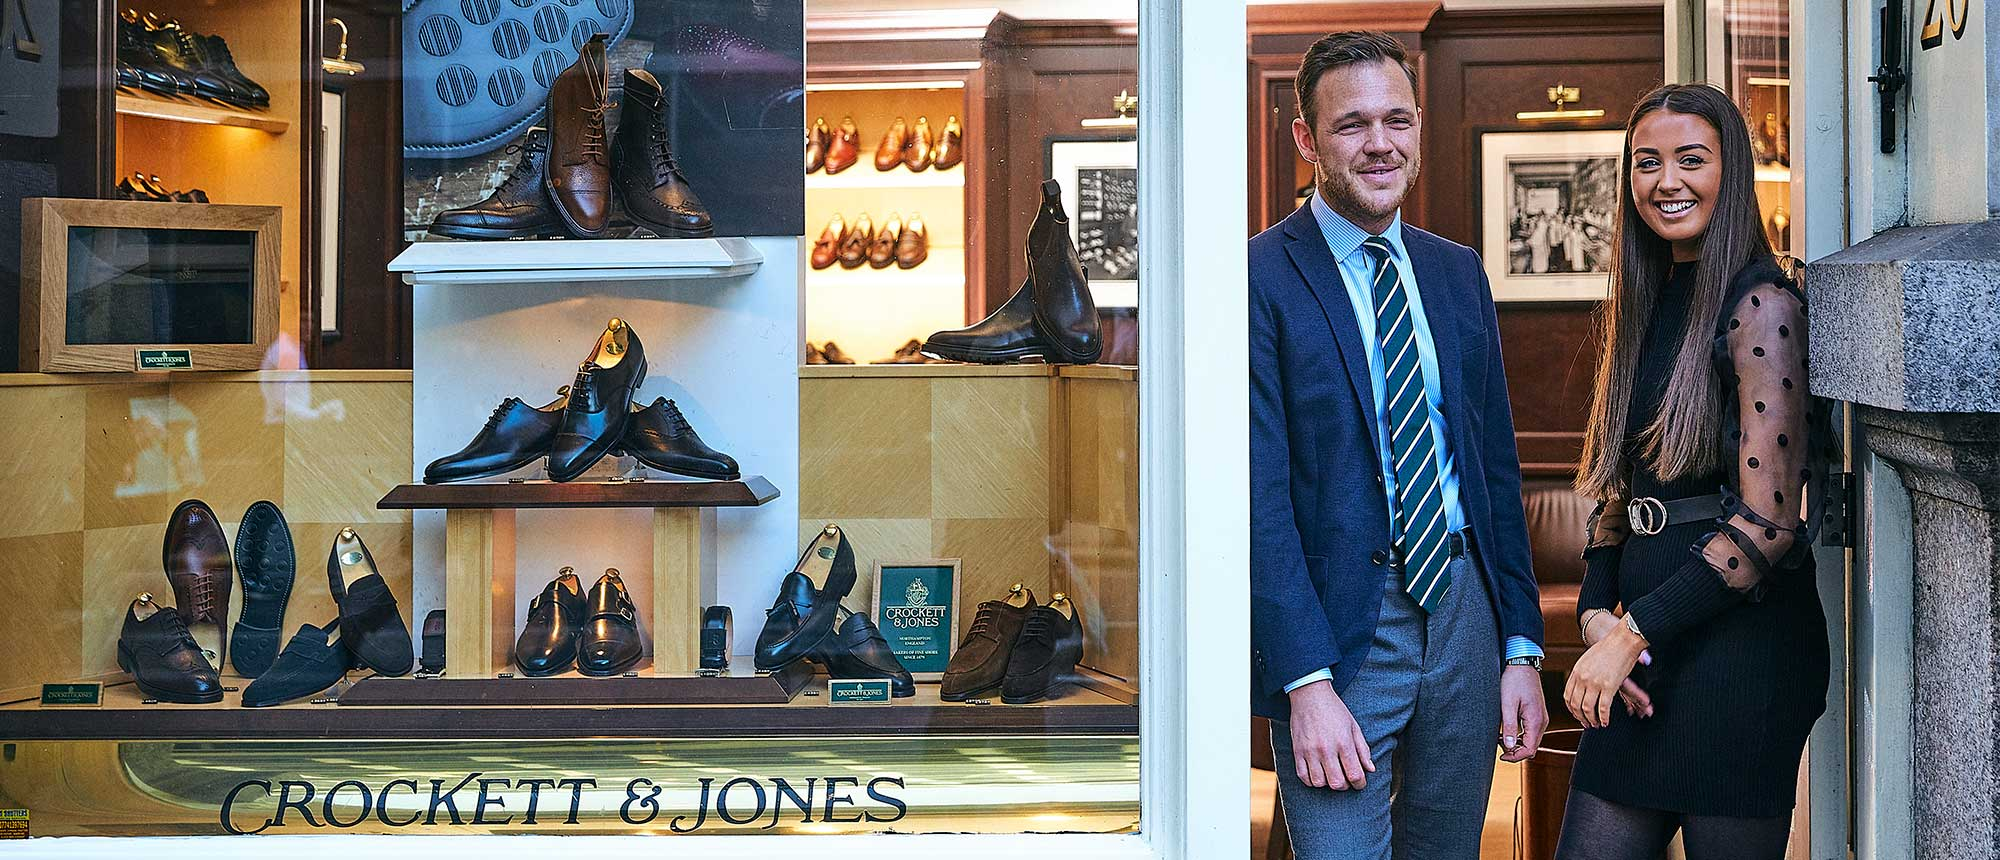 Crockett & Jones - Retail Around the World - Royal Exchange